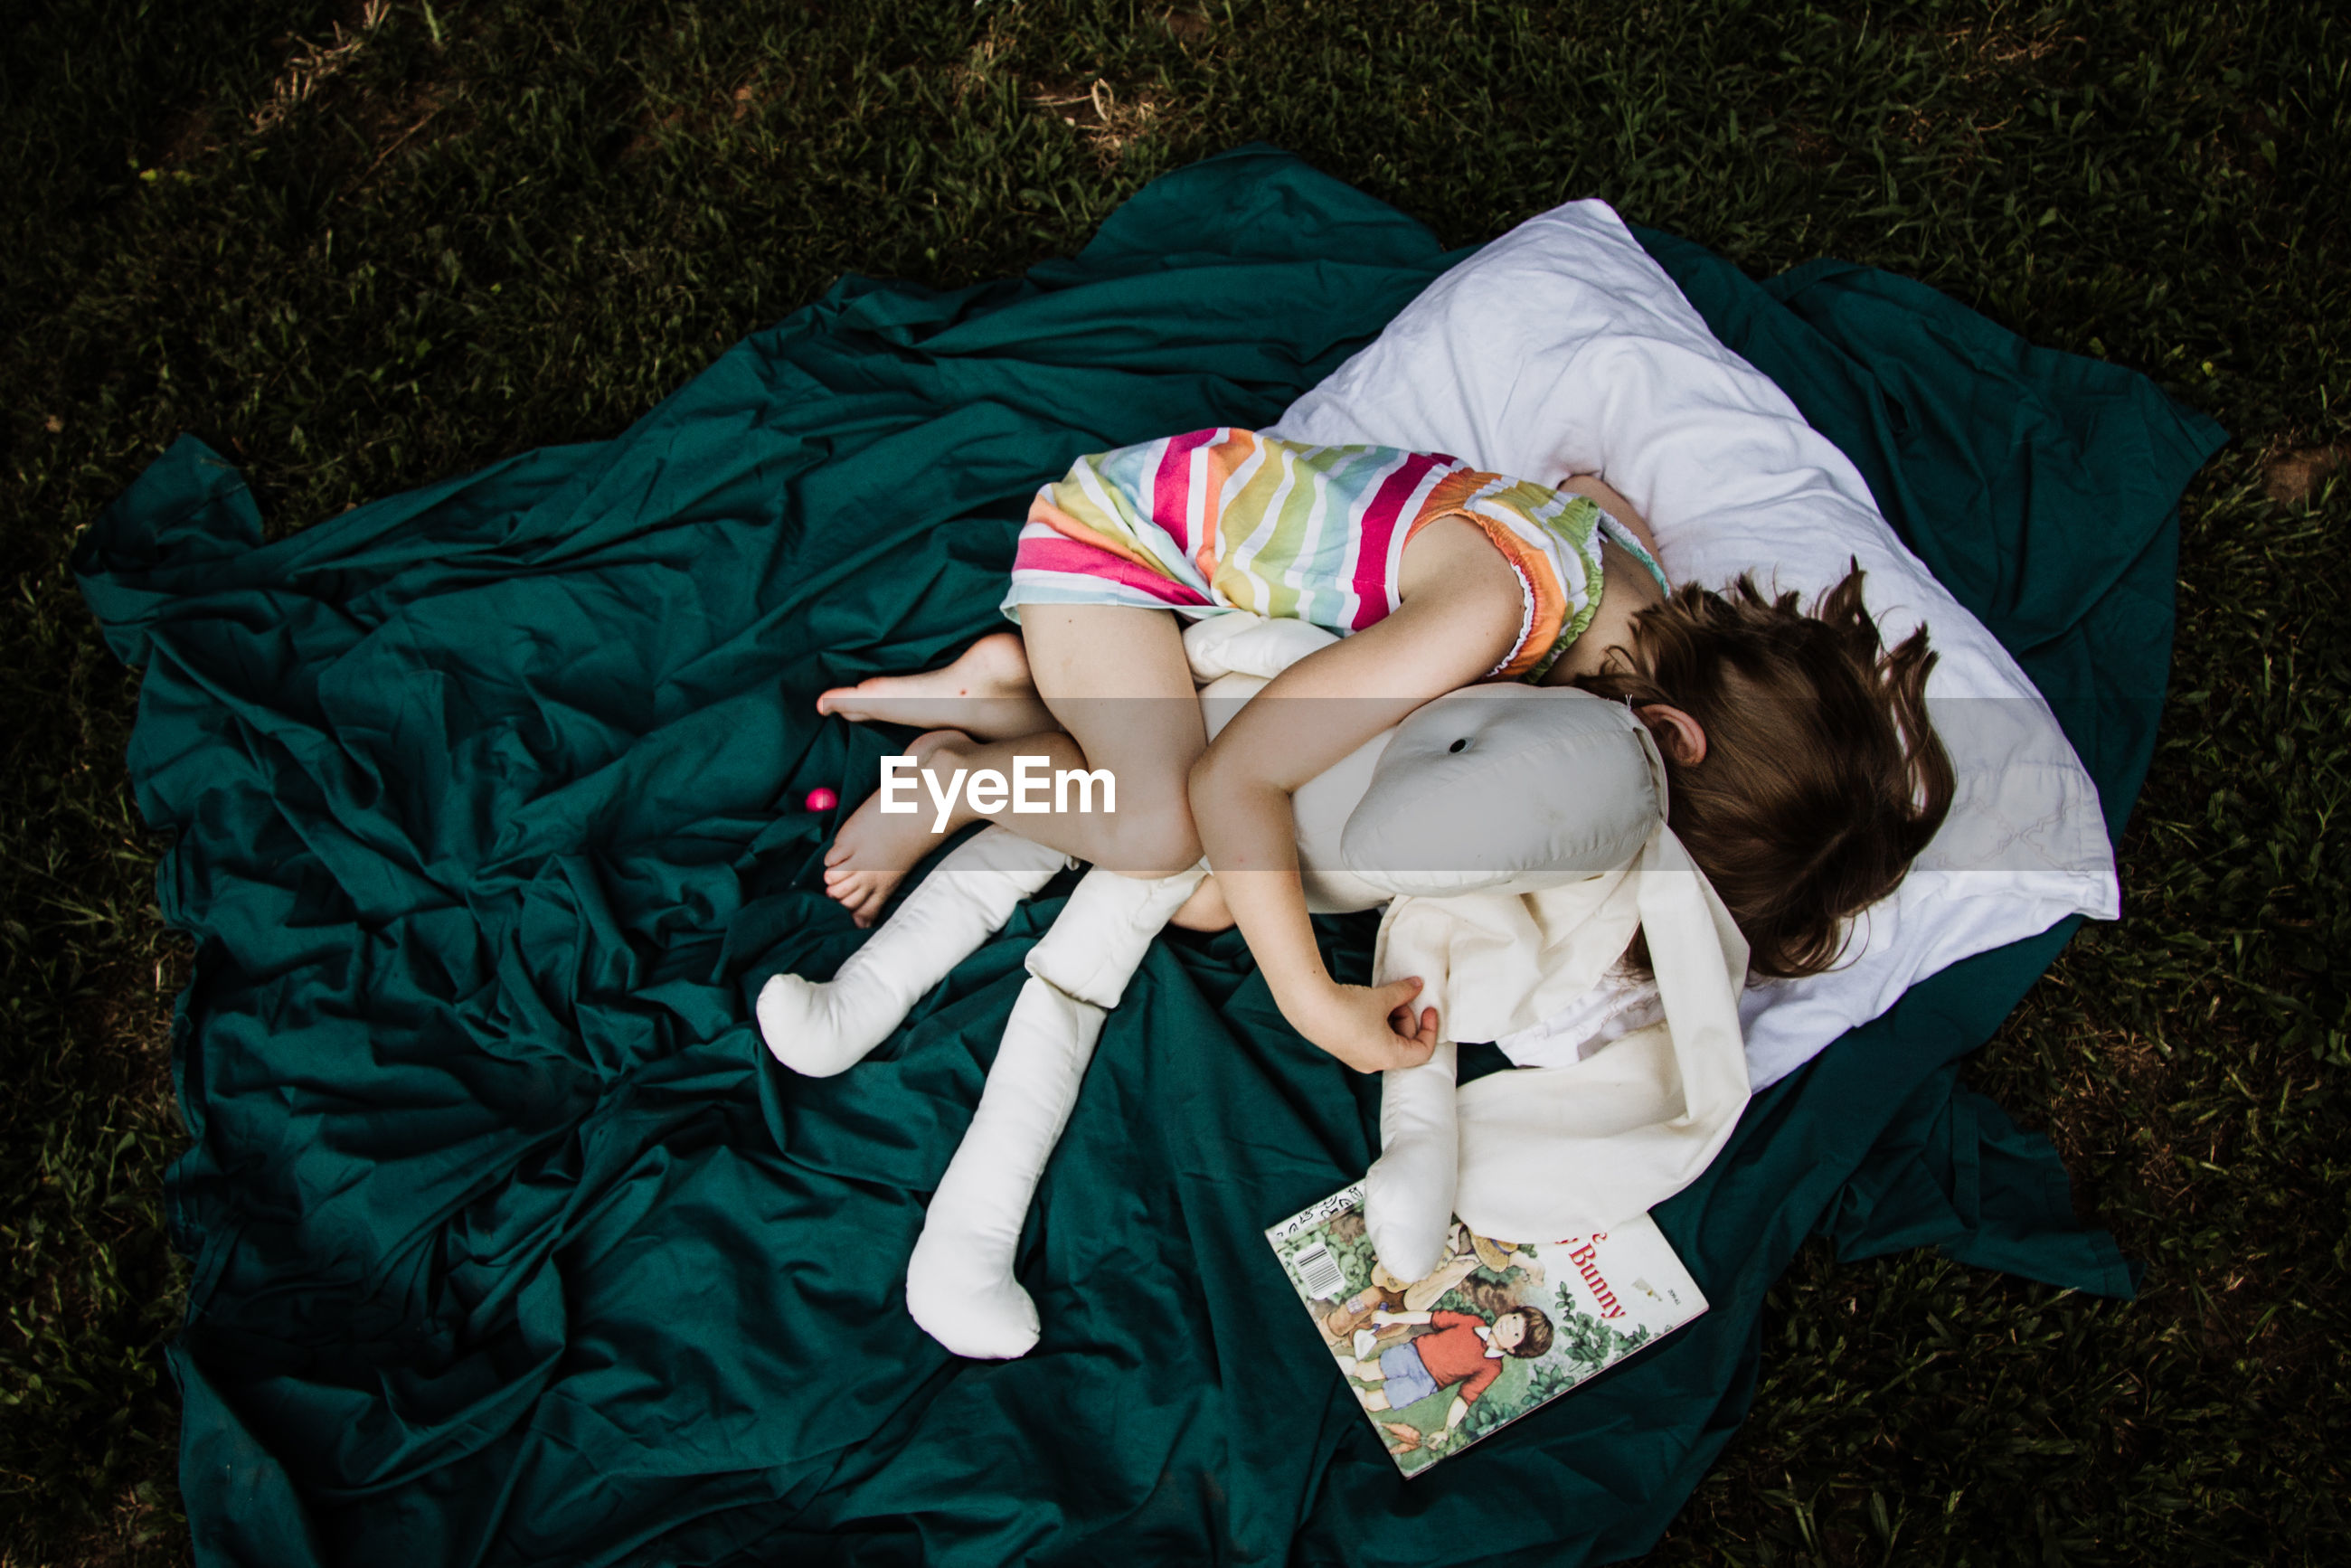 High angle view of girl with stuffed toy lying on blanket